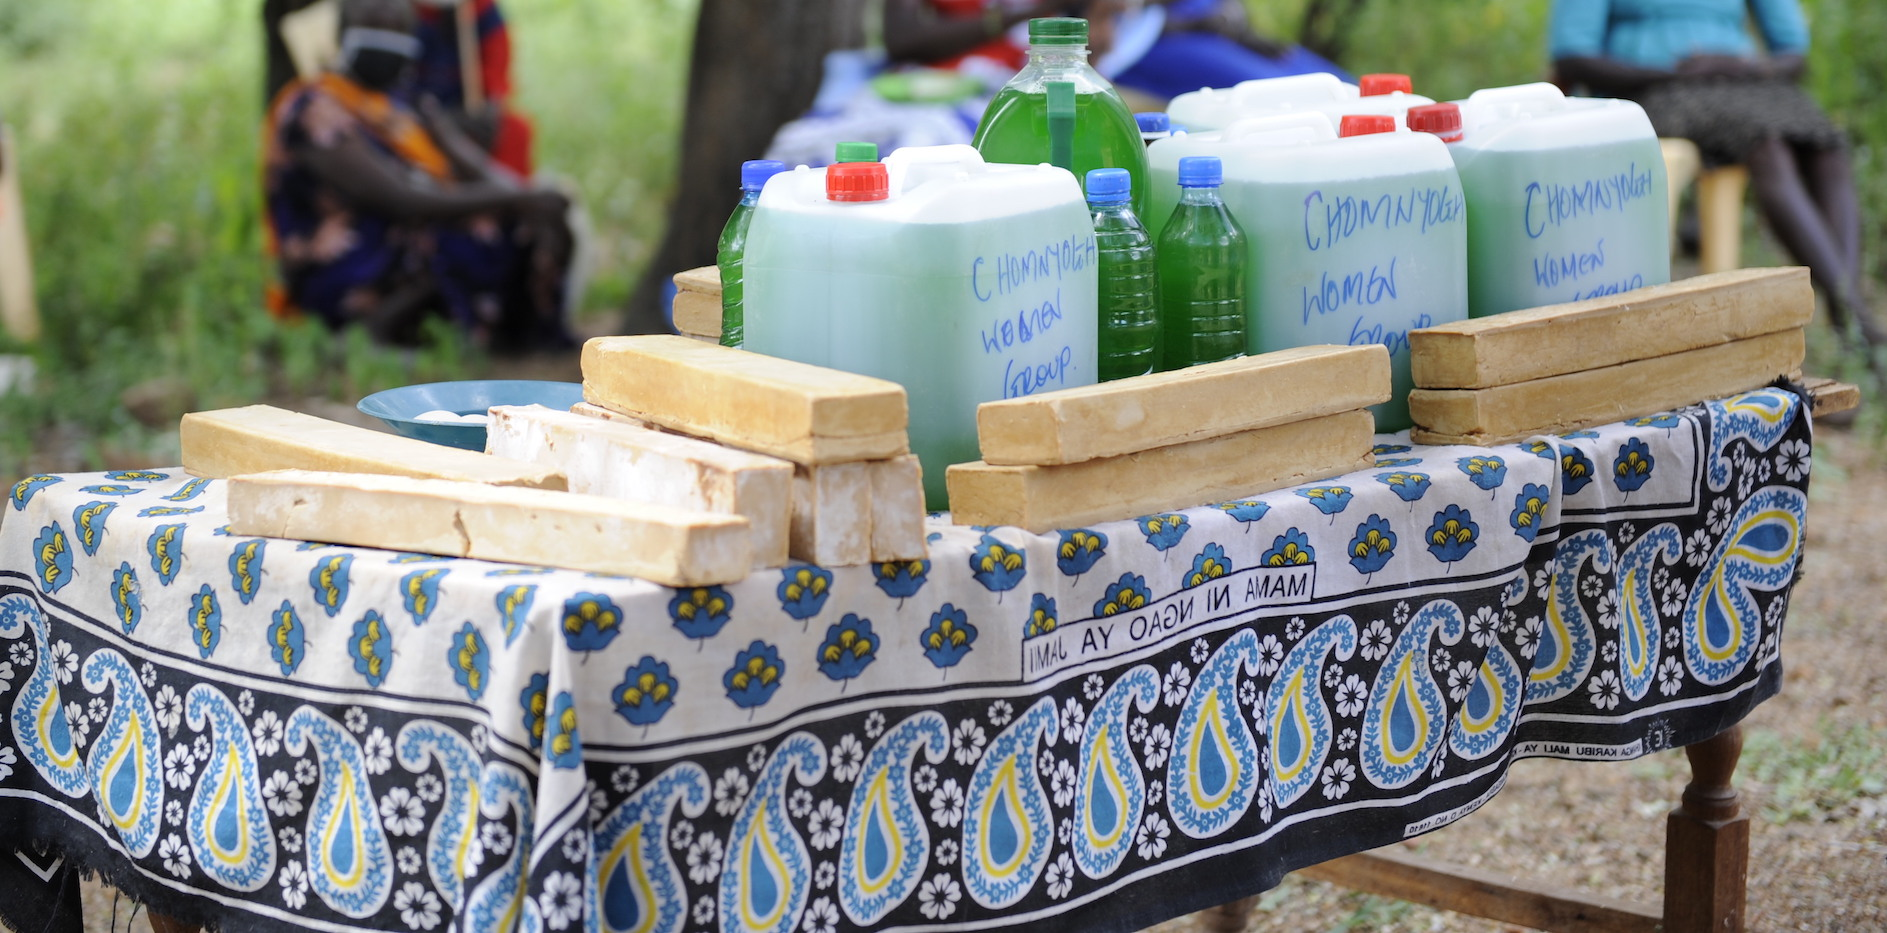 Soap made by the women to help fight COVID-19 in Baringo County, Kenya. ©World Vision Photo/Dickson Kahindi.